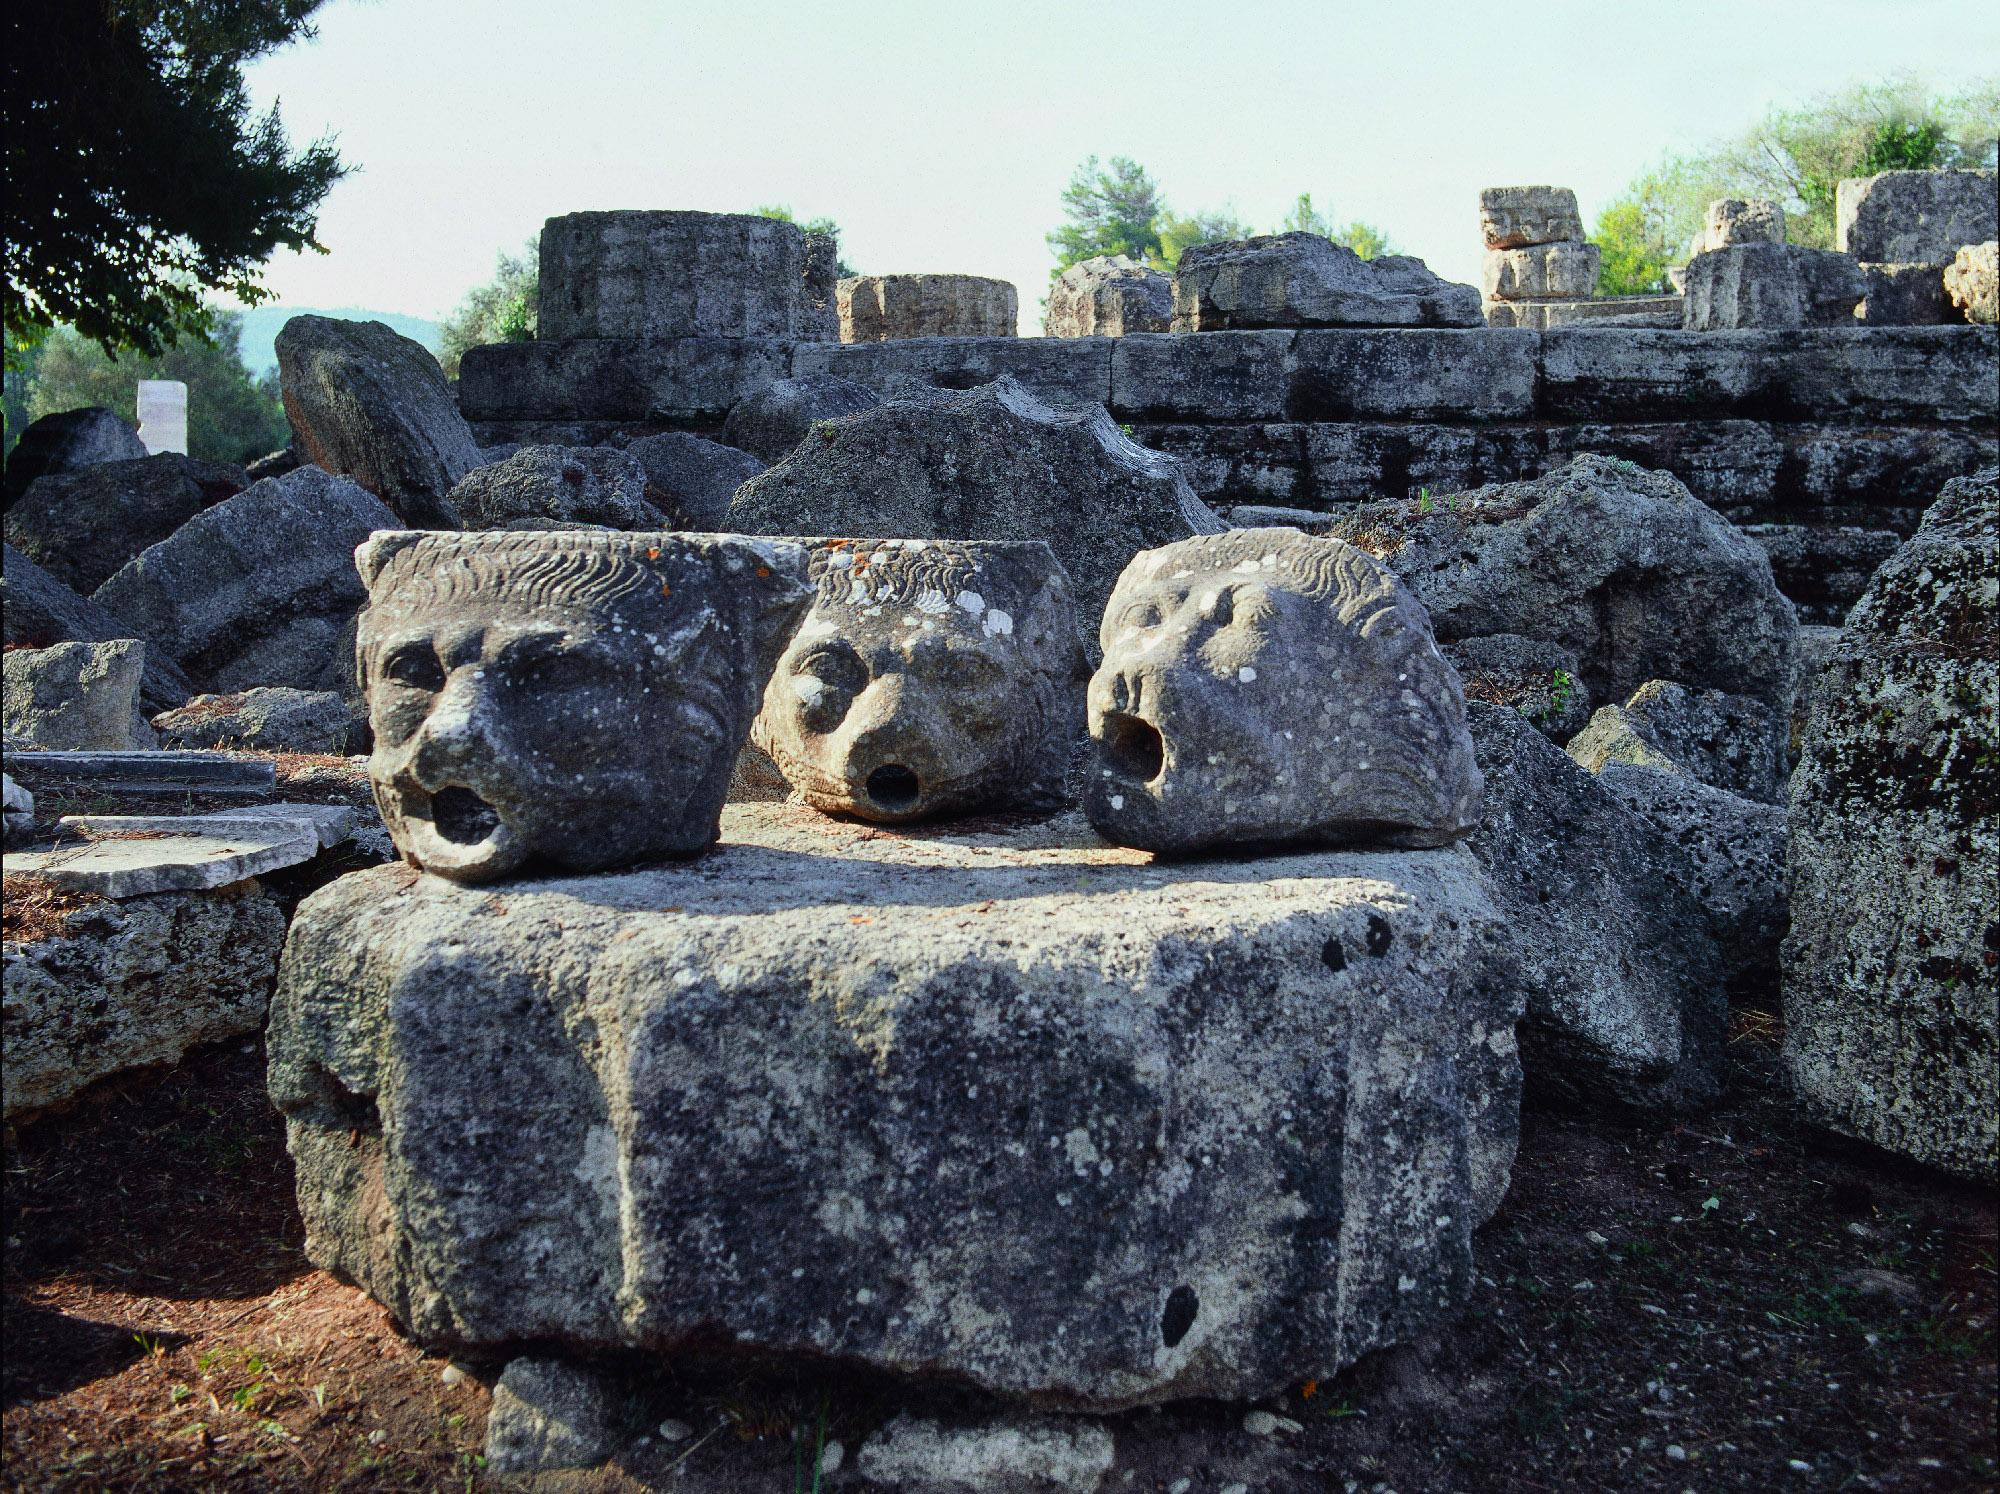 Marble lion heads acted as waterspouts at the impressive Temple of Zeus. – © Hellenic Ministry of Culture and Sports / Ephorate of Antiquities of Ilia